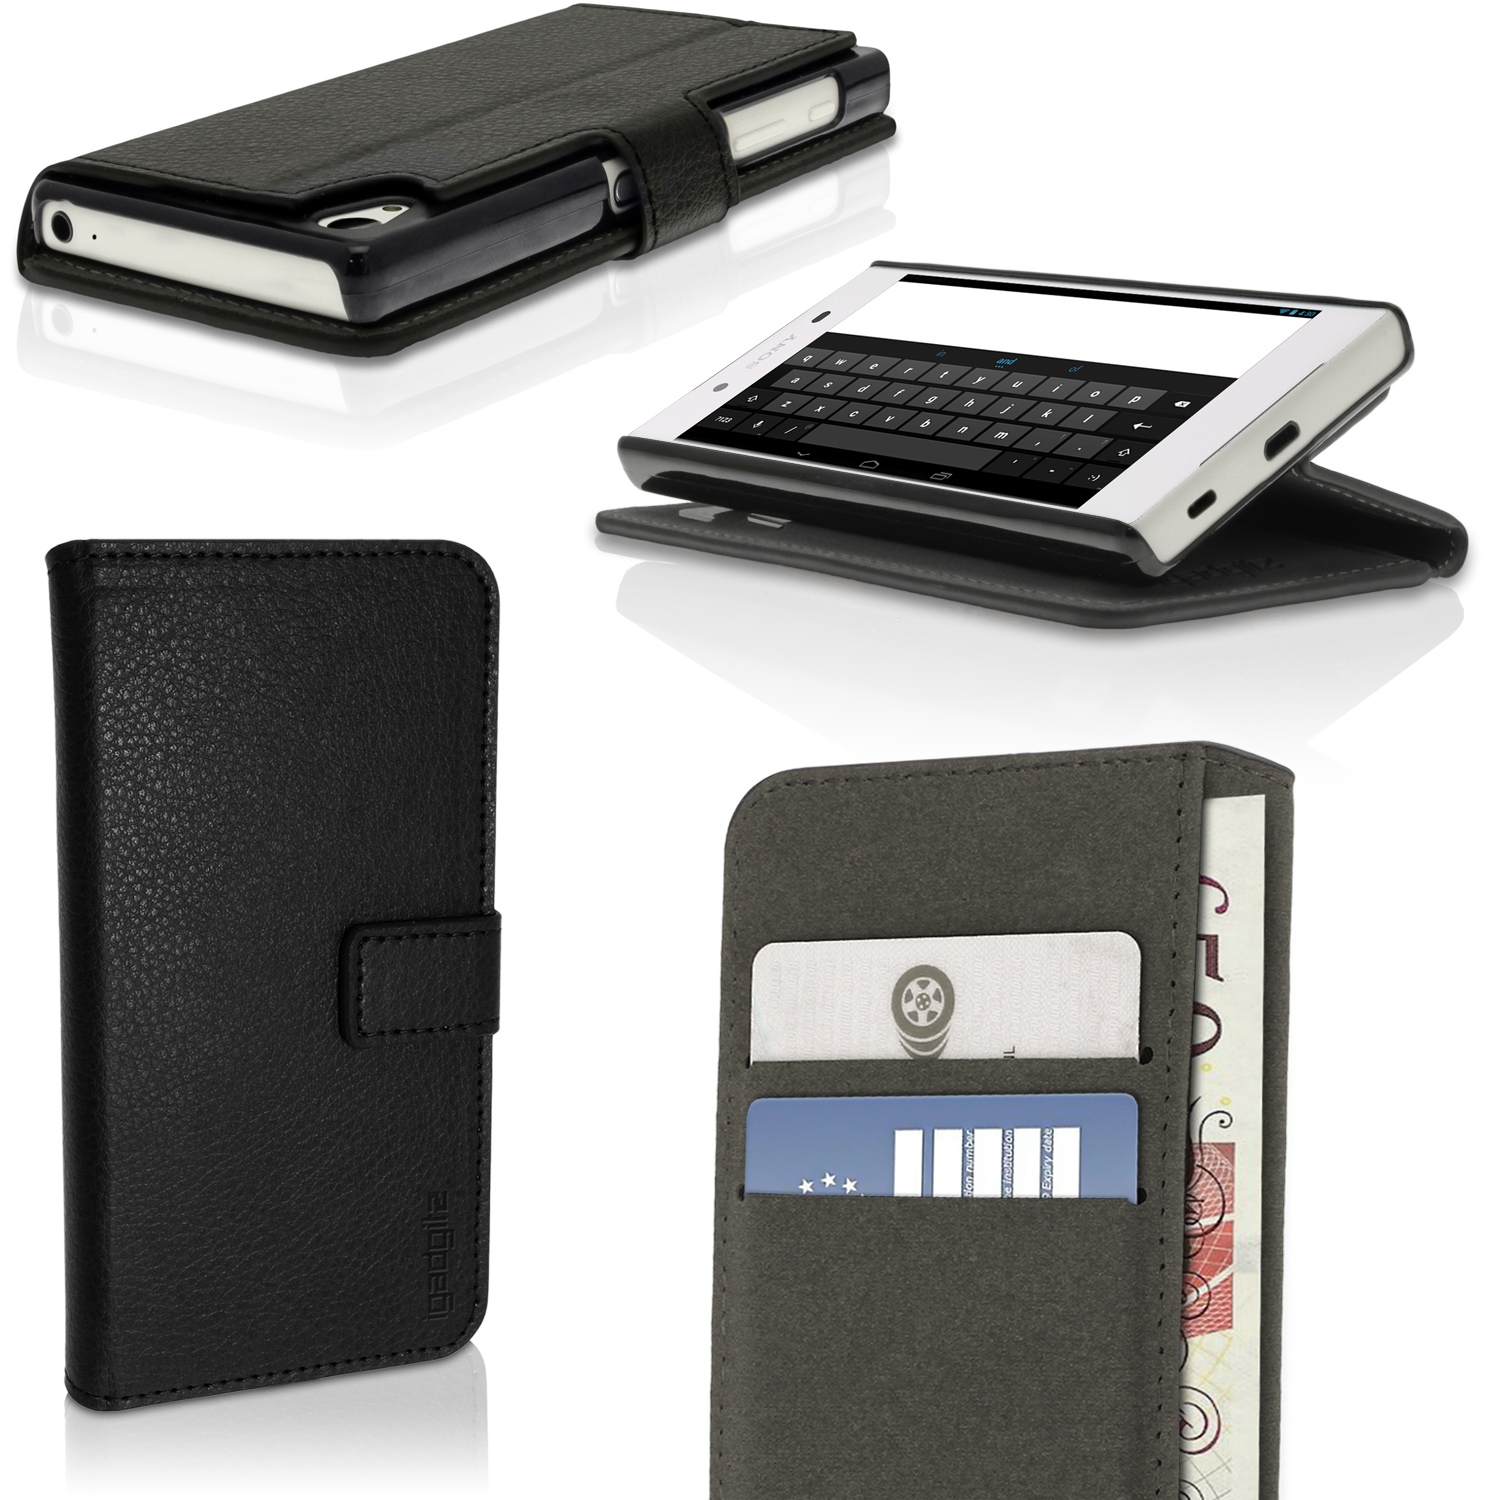 iGadgitz Wallet Flip PU Leather Case Cover for Sony Xperia Z5 E6603 with Card Slots + Stand + Screen Protector